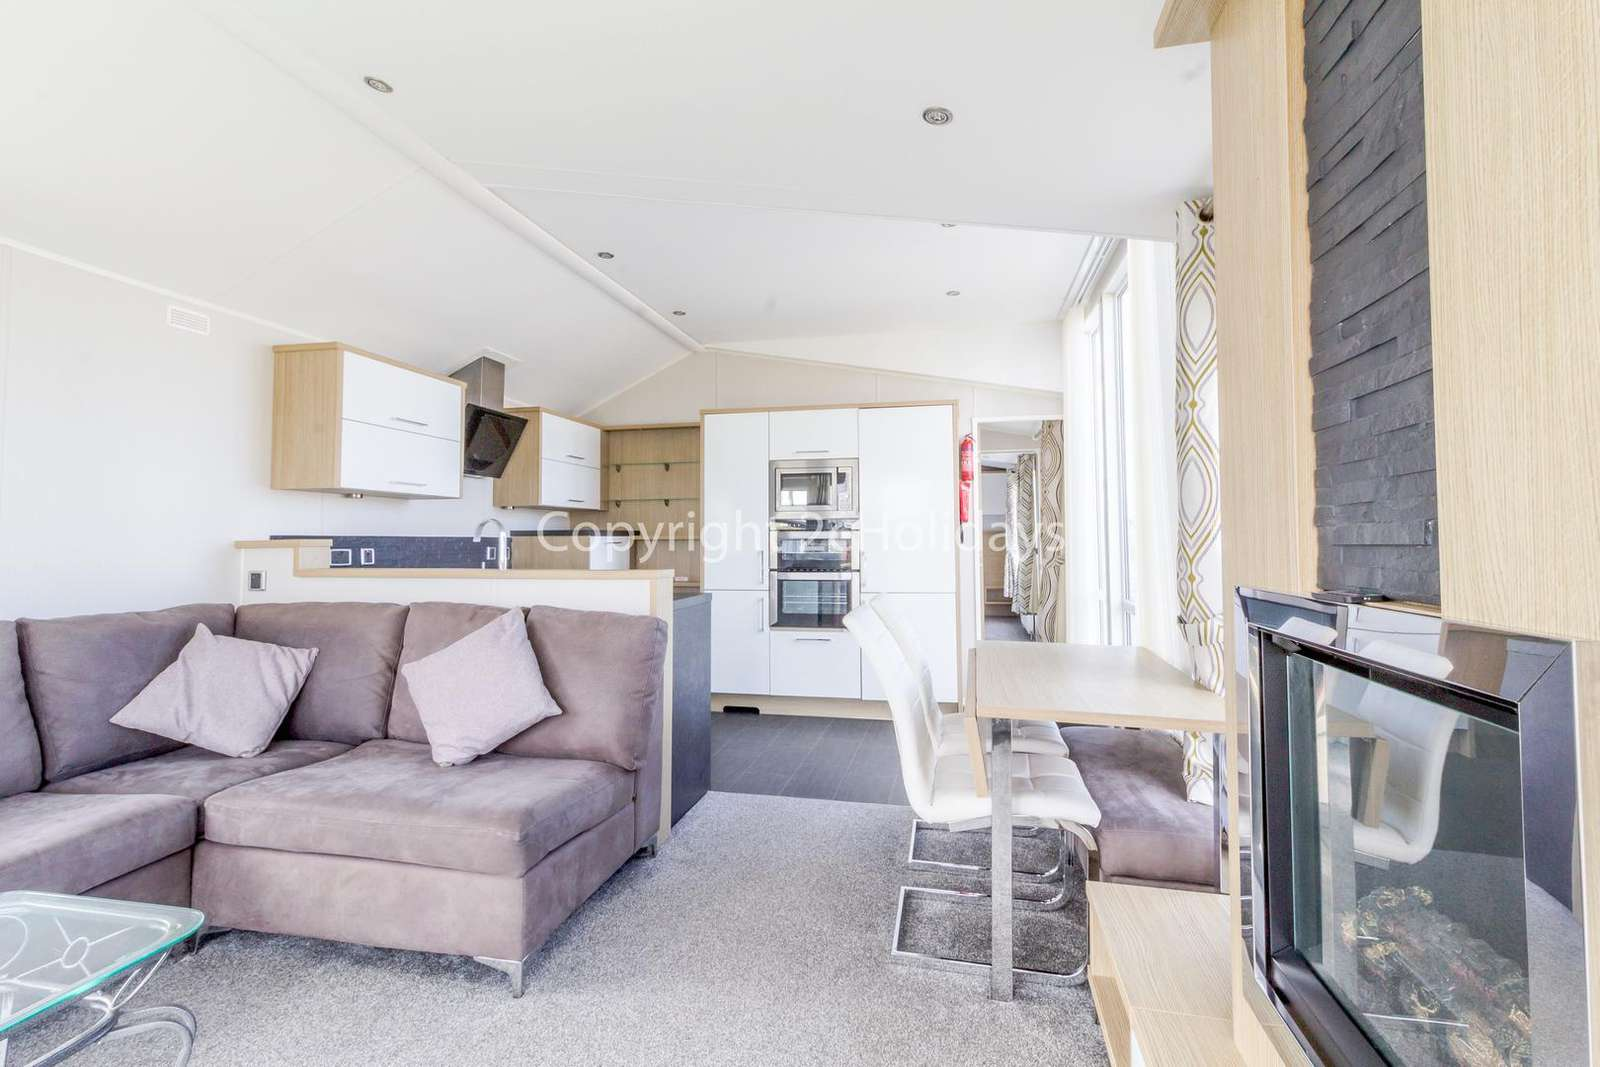 Very spacious and open planned, great for families!